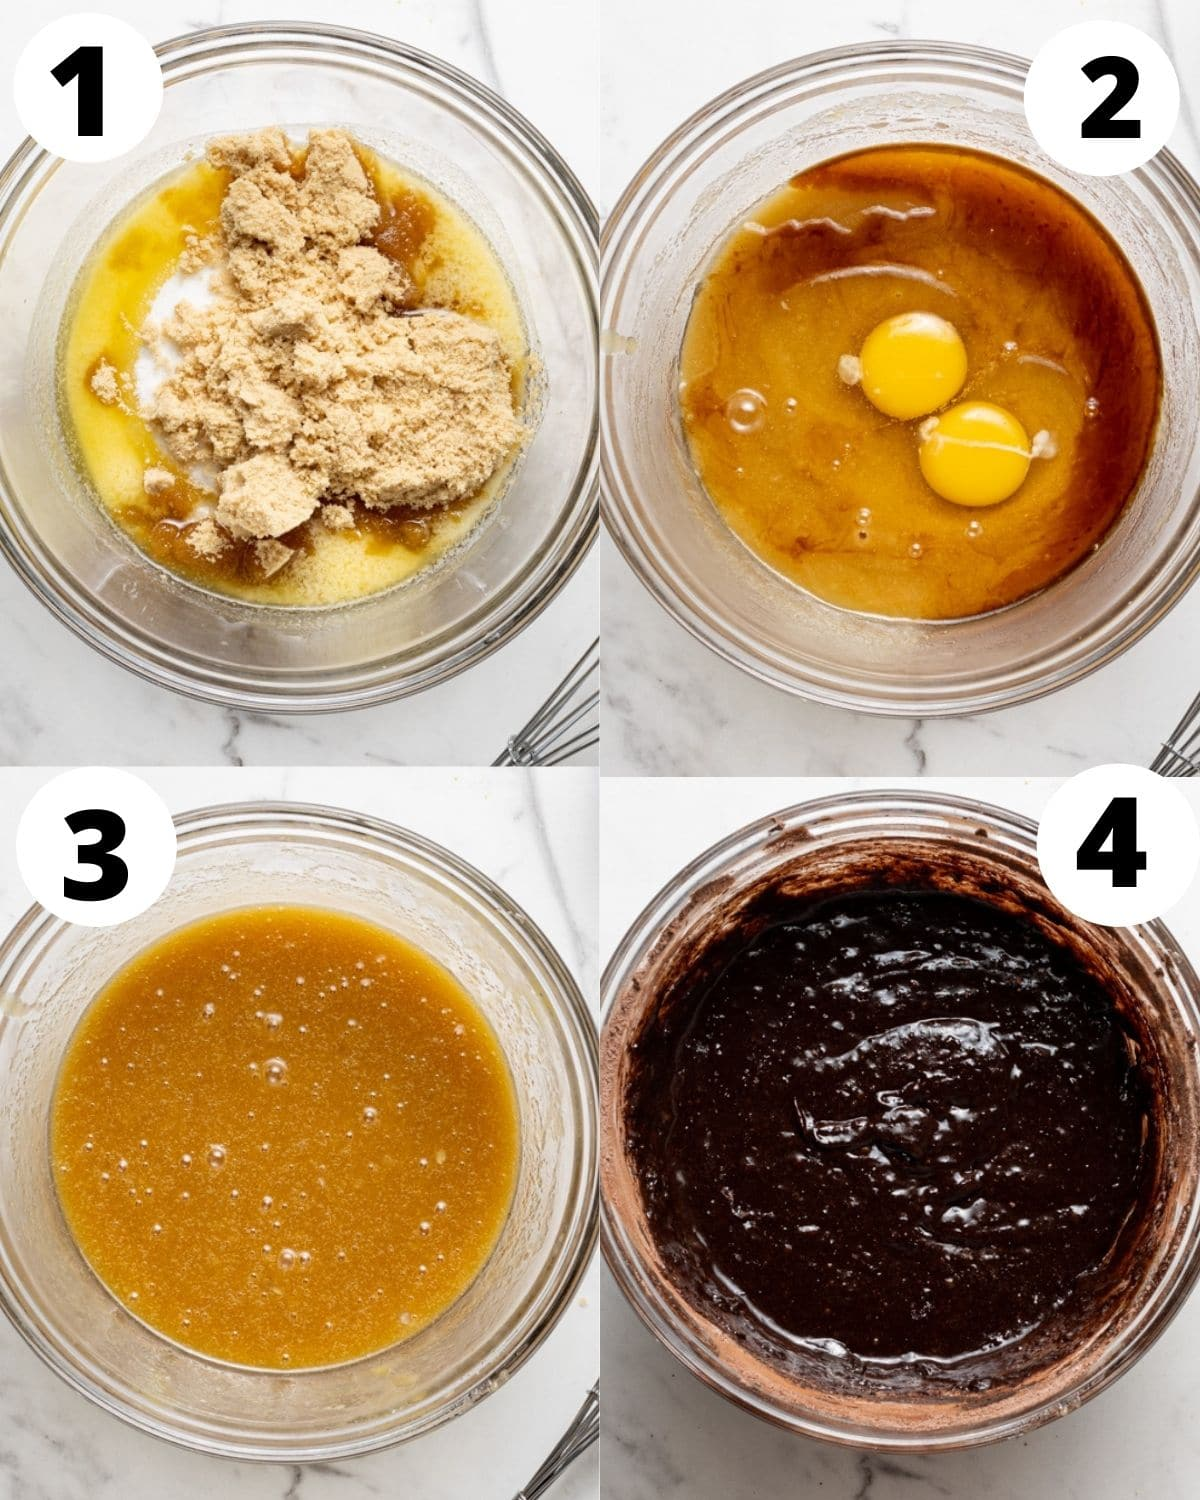 step by step process showing how to make dairy free brownies